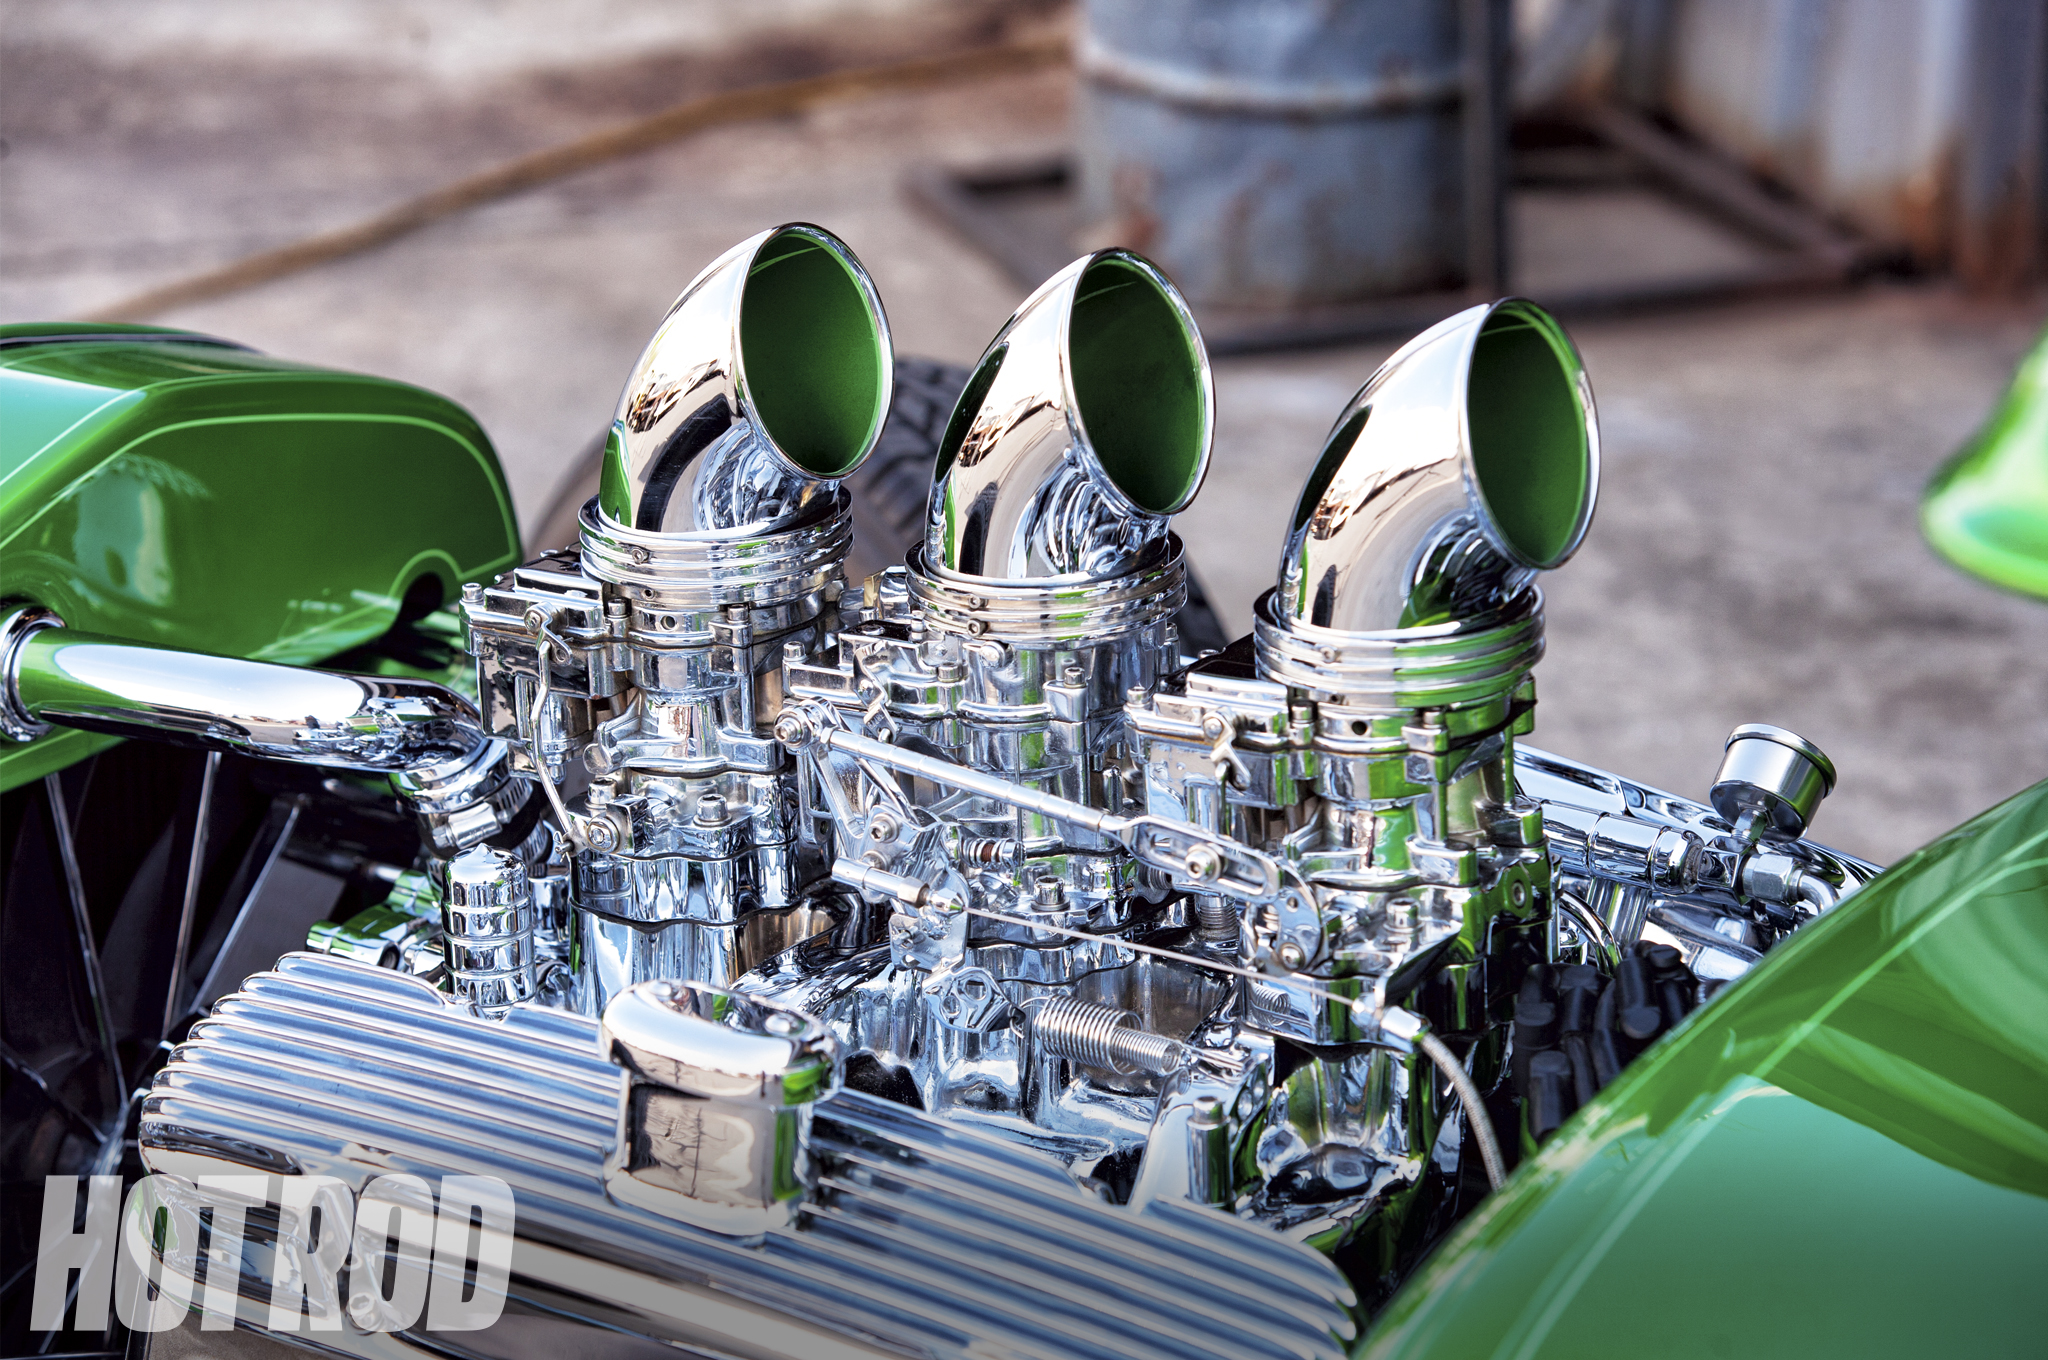 A trio of Rochester two-barrel carbs were rebuilt by Rick's Carburetor and mounted to an aluminum reproduction 1966 Tri-power manifold using 1-1/4-inch spacers. The air cleaners and linkages were built in-house at Super Rides.